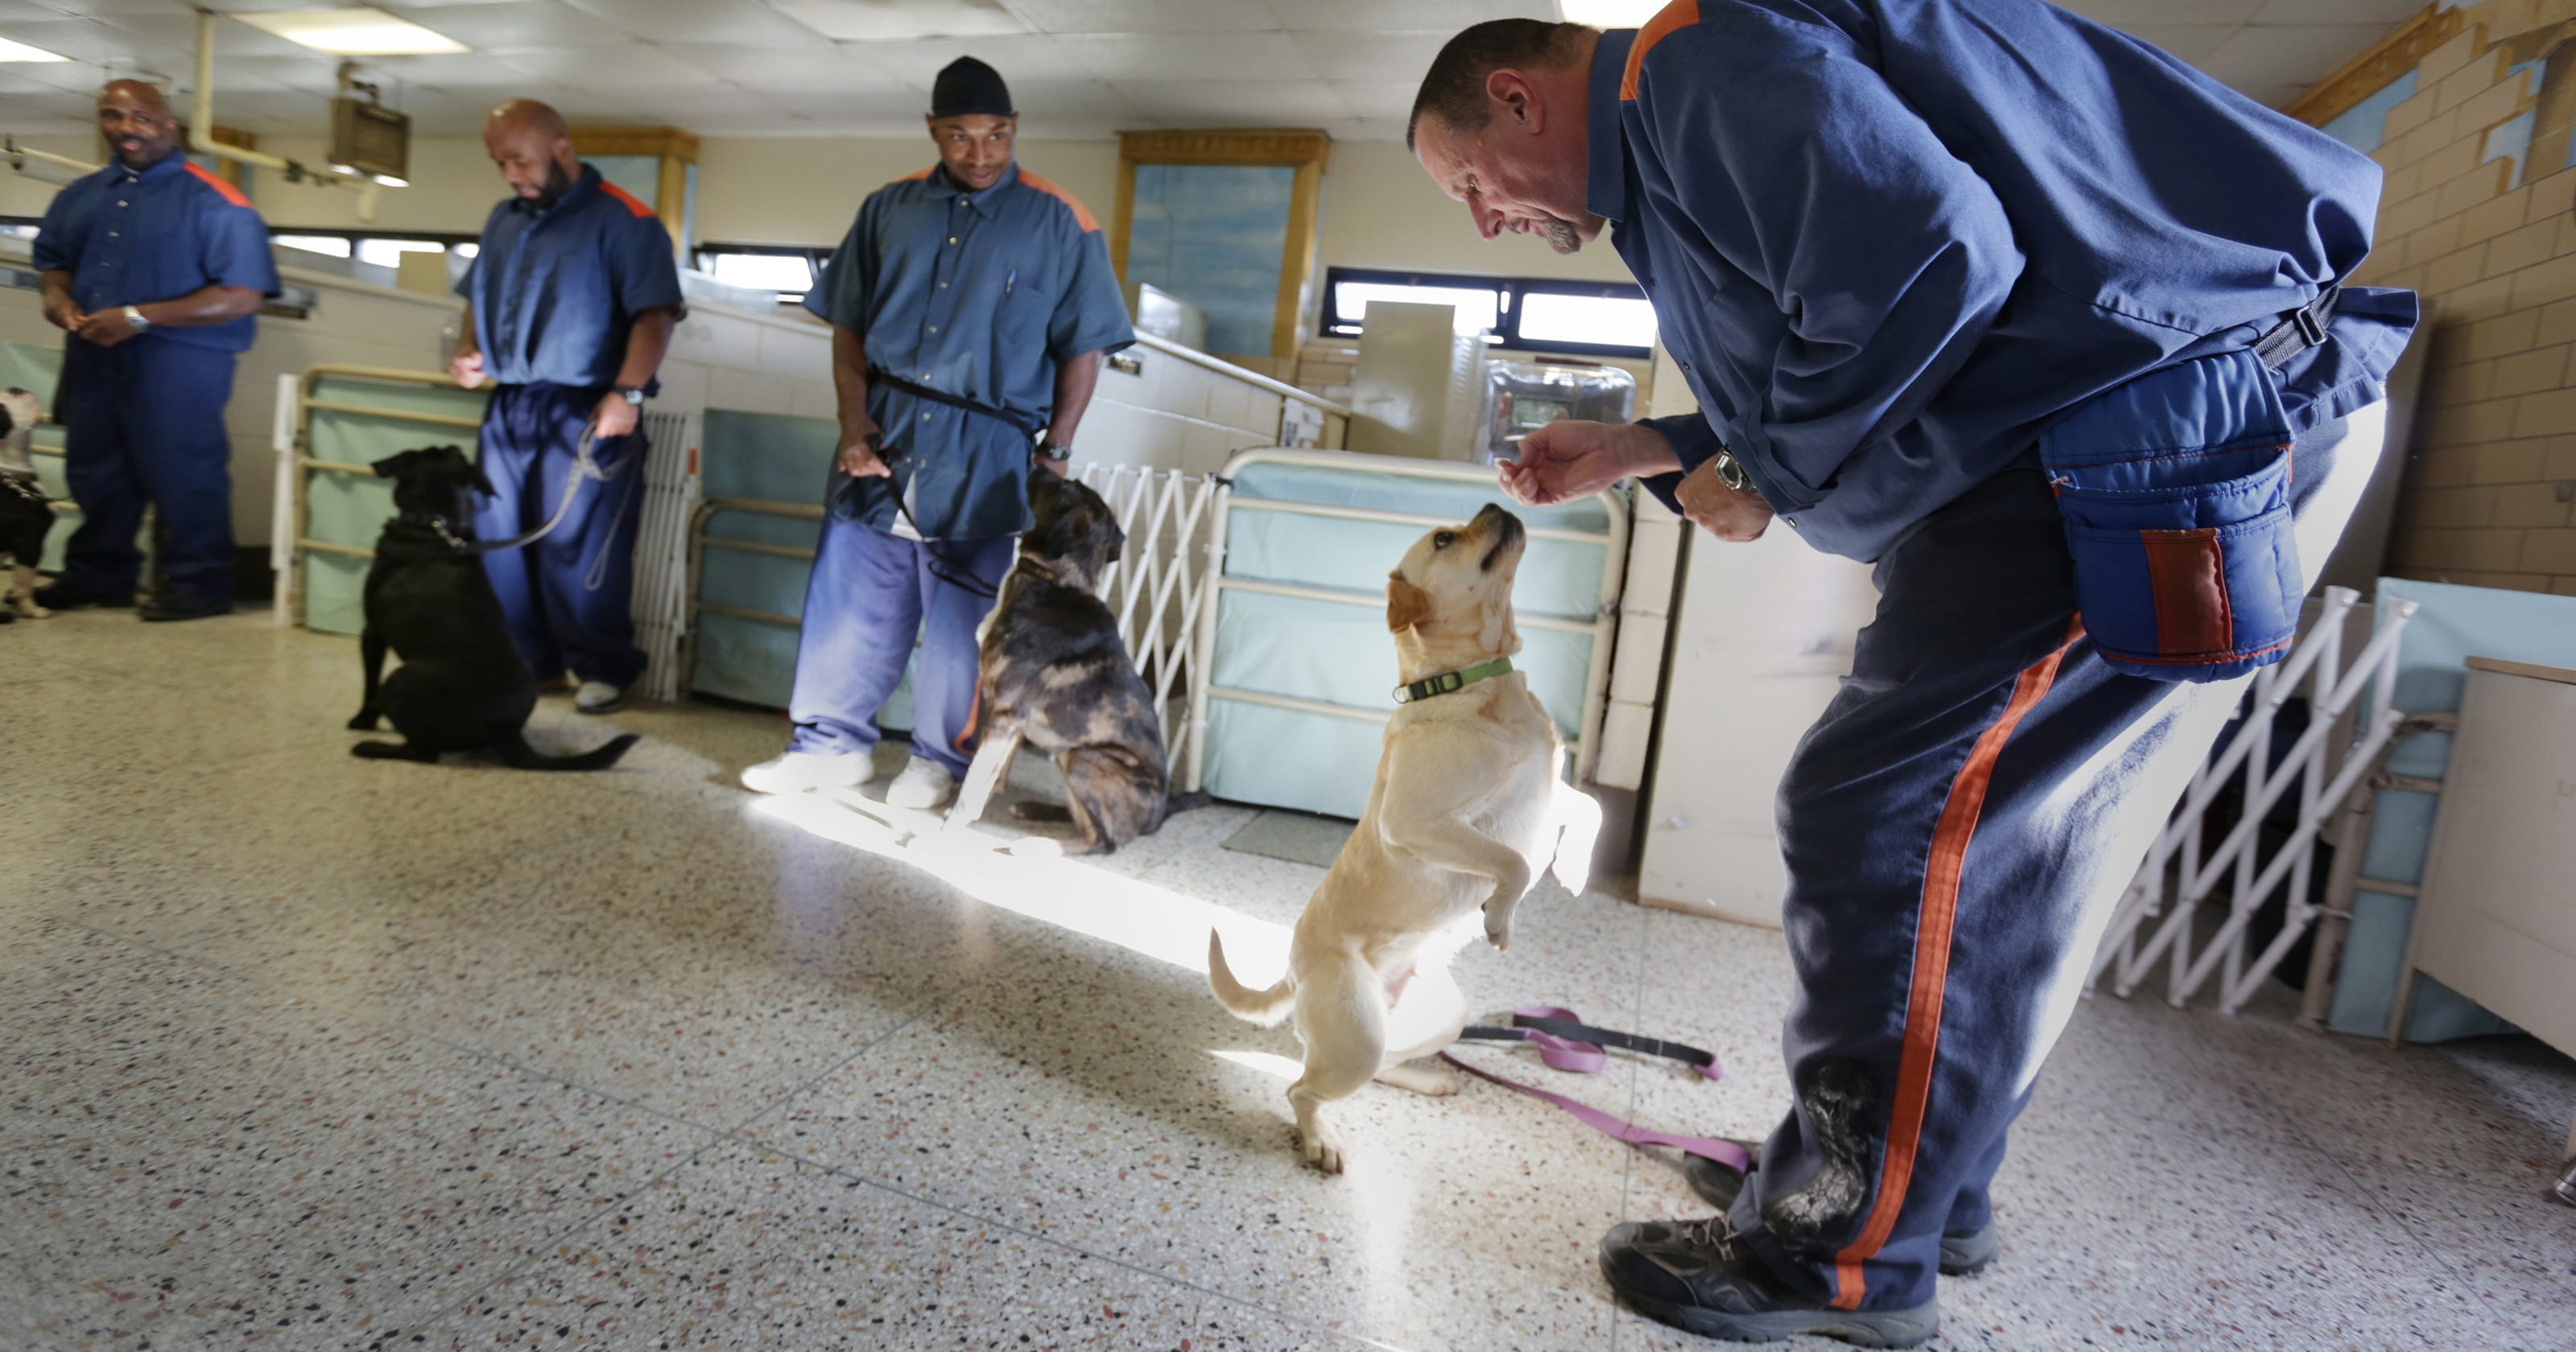 Inmates rescue dogs, who rescue inmates